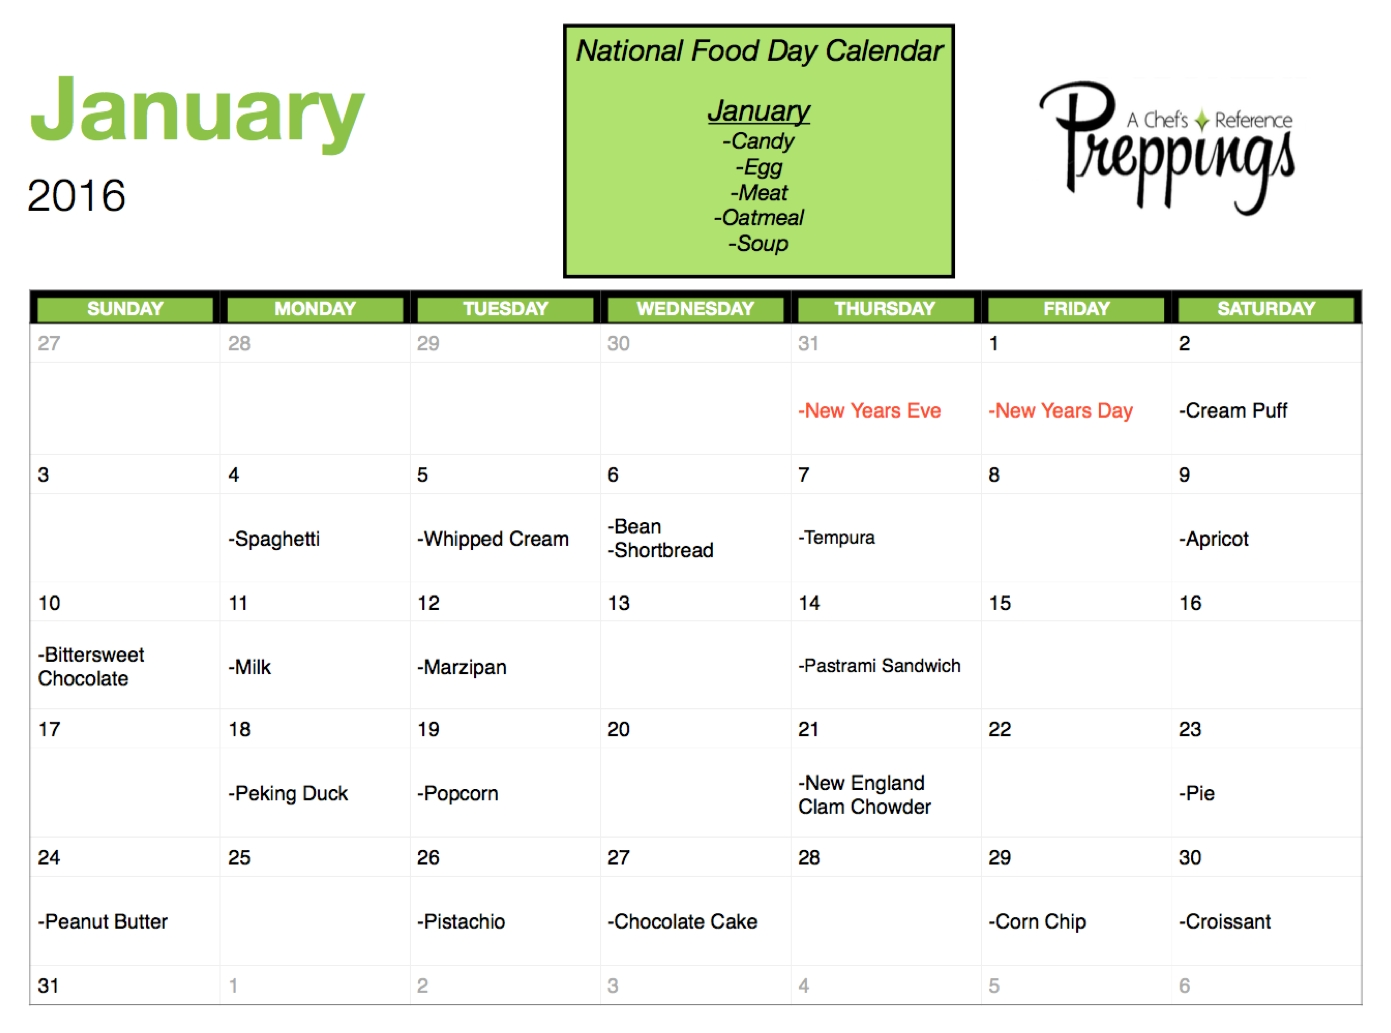 Food Politics Archives - Preppings with National Foods Day Calendar August